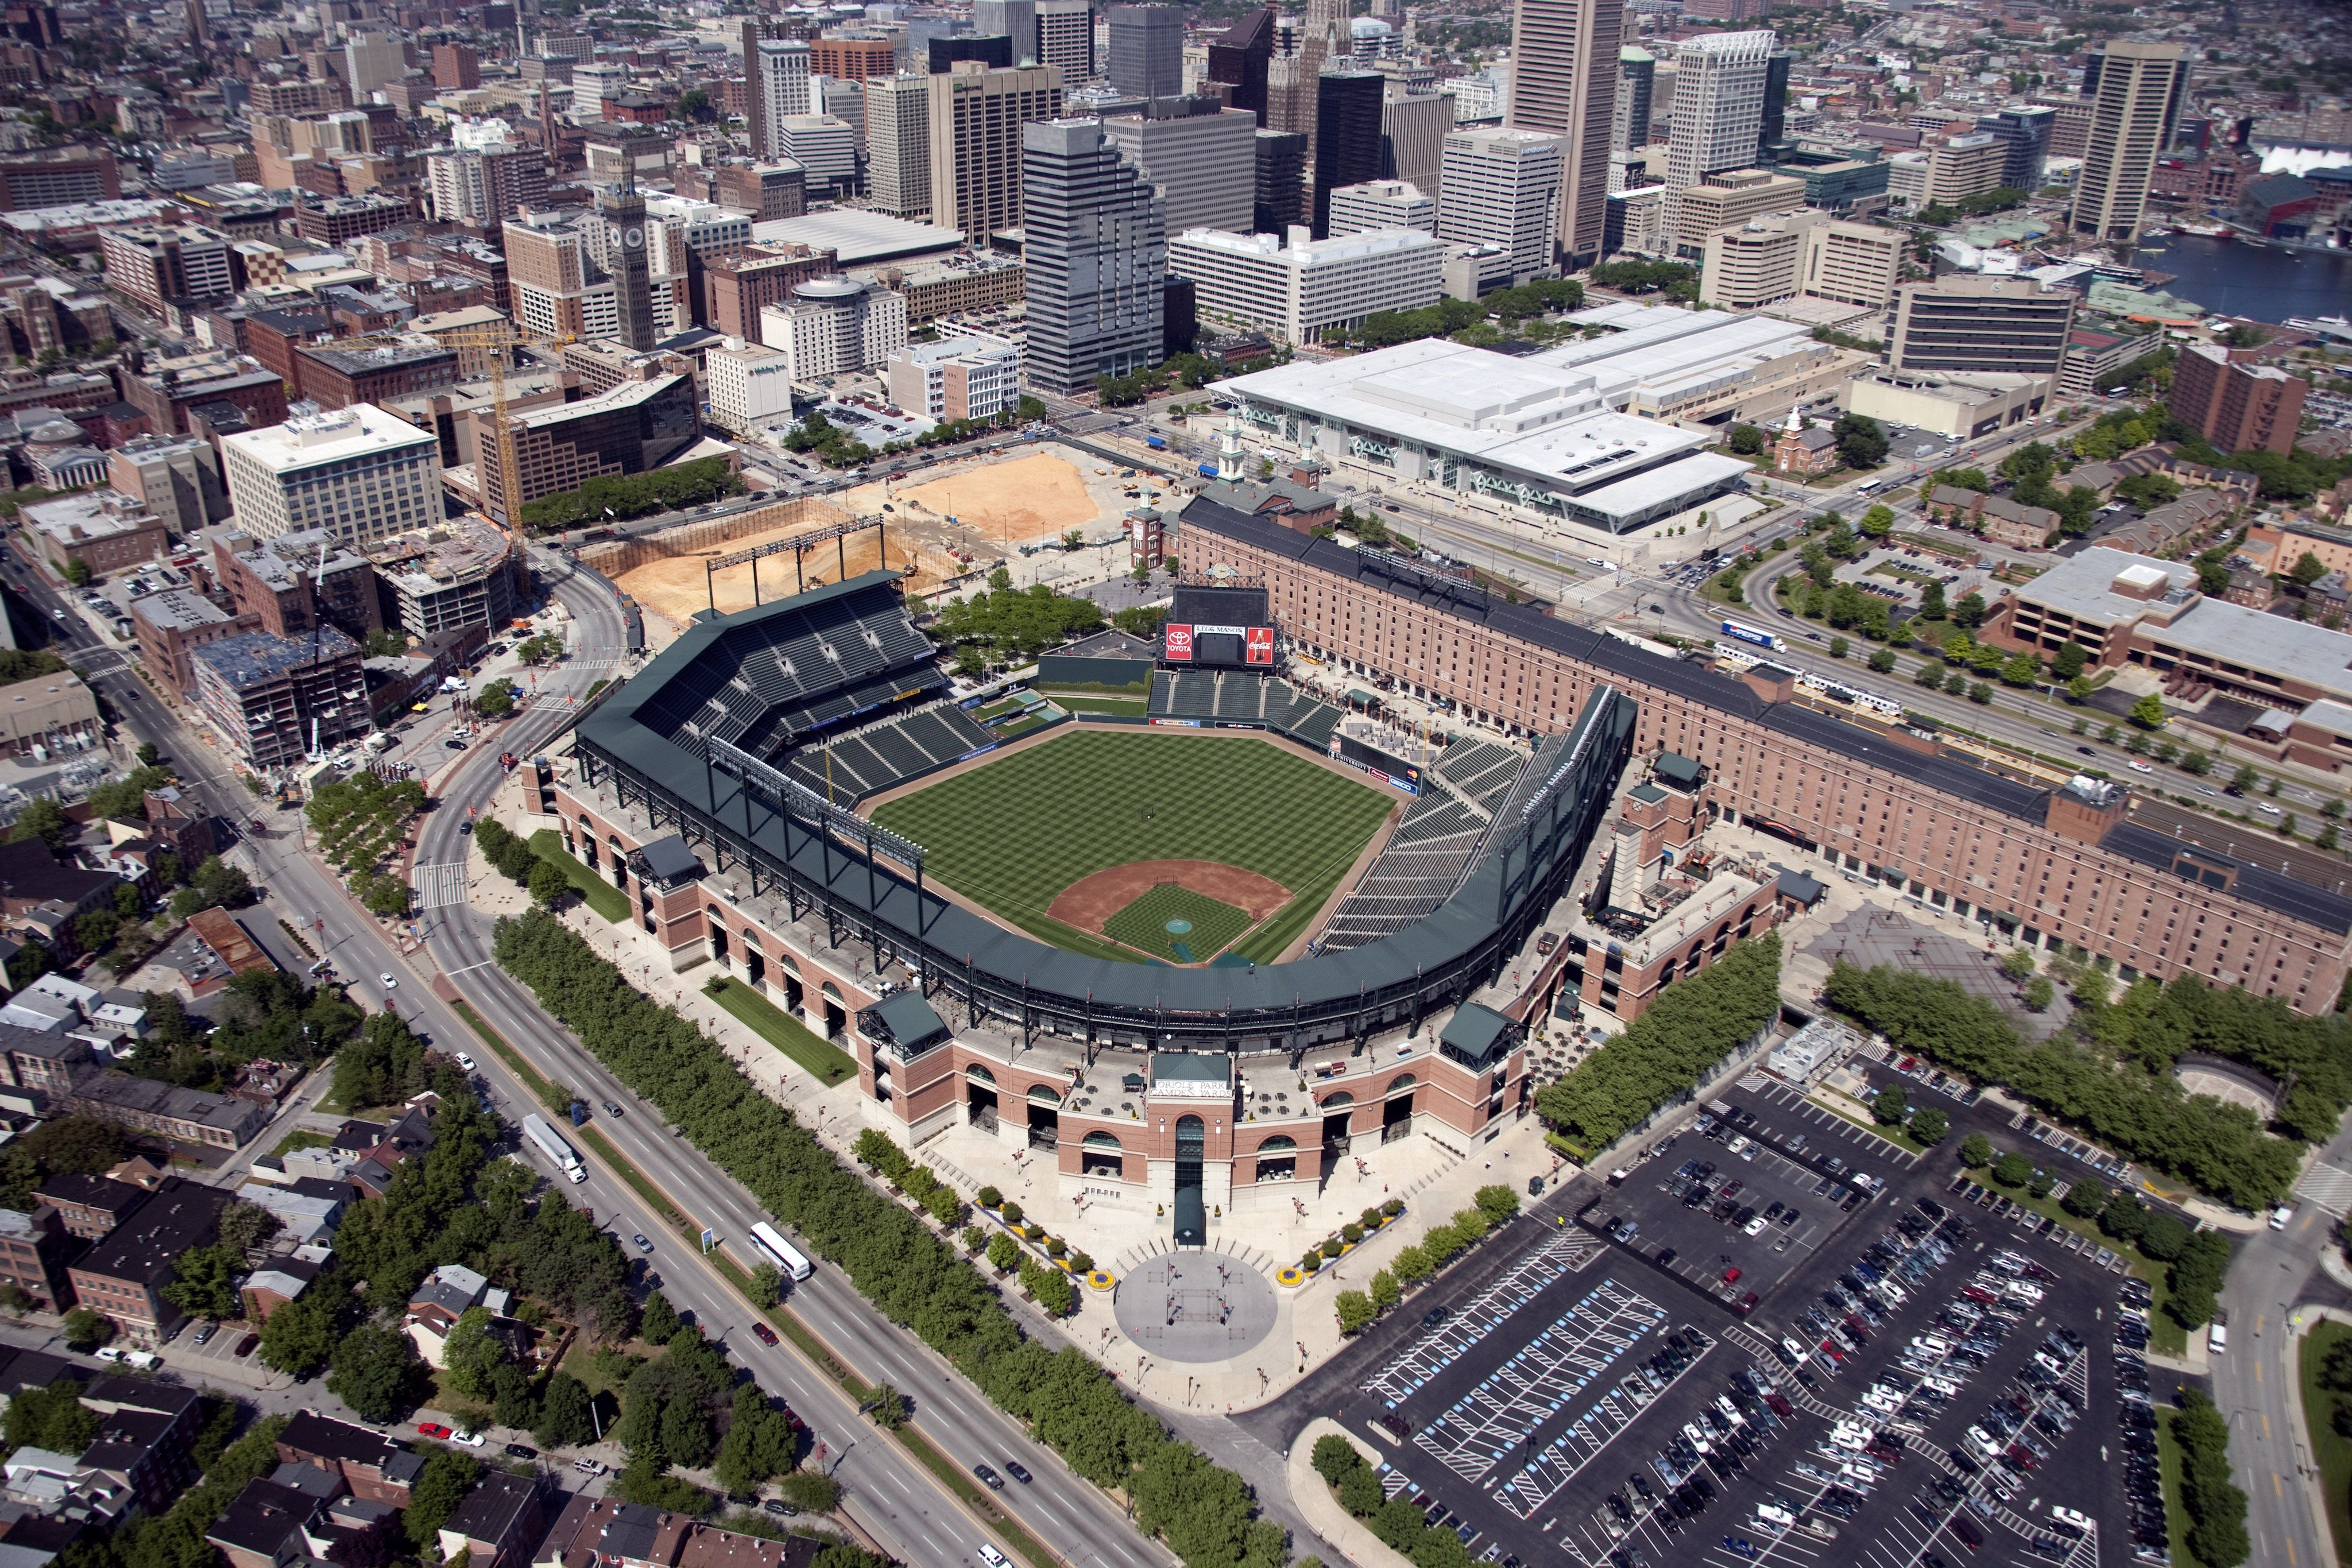 Oriole Park At Camden Yards Baltimore Maryland Camden Yards Baseball Park Baseball Stadium